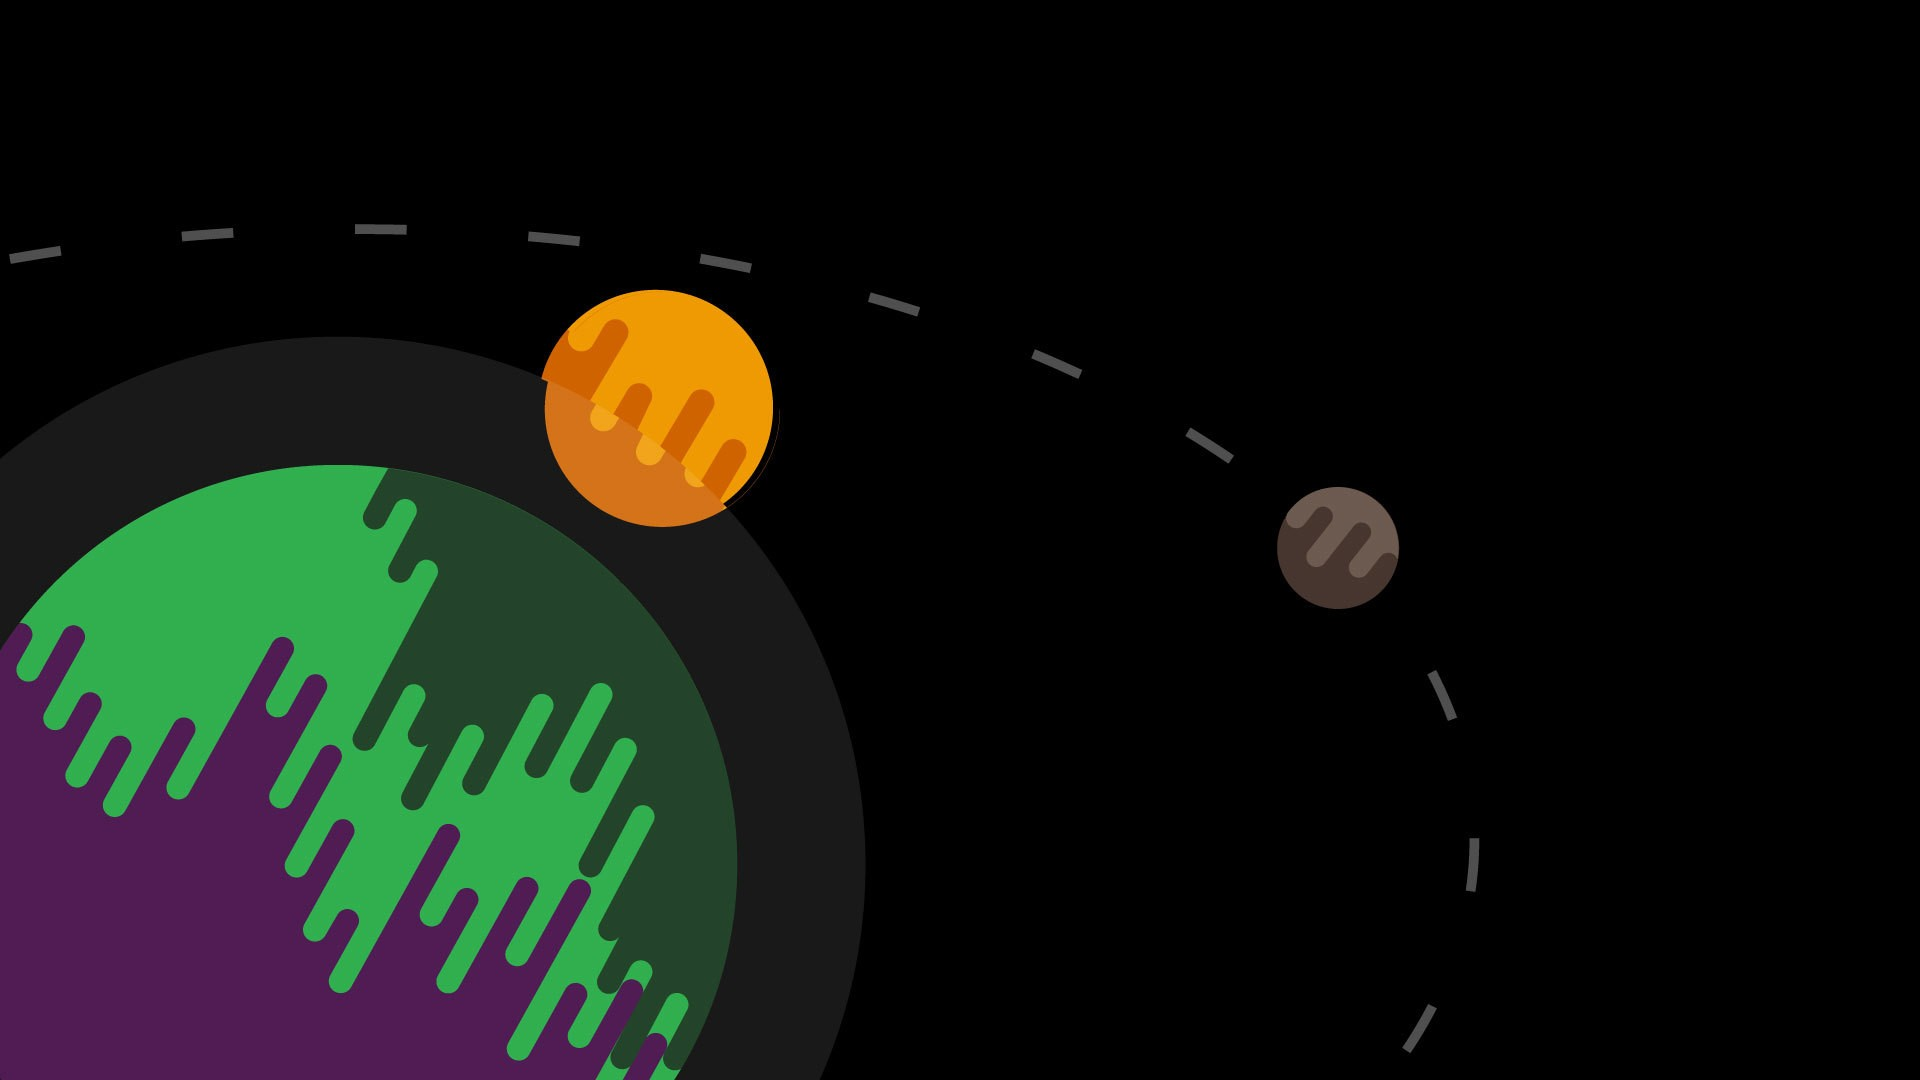 Drippy Space Wallpaper   KoLPaPer   Awesome HD Wallpapers 1920x1080